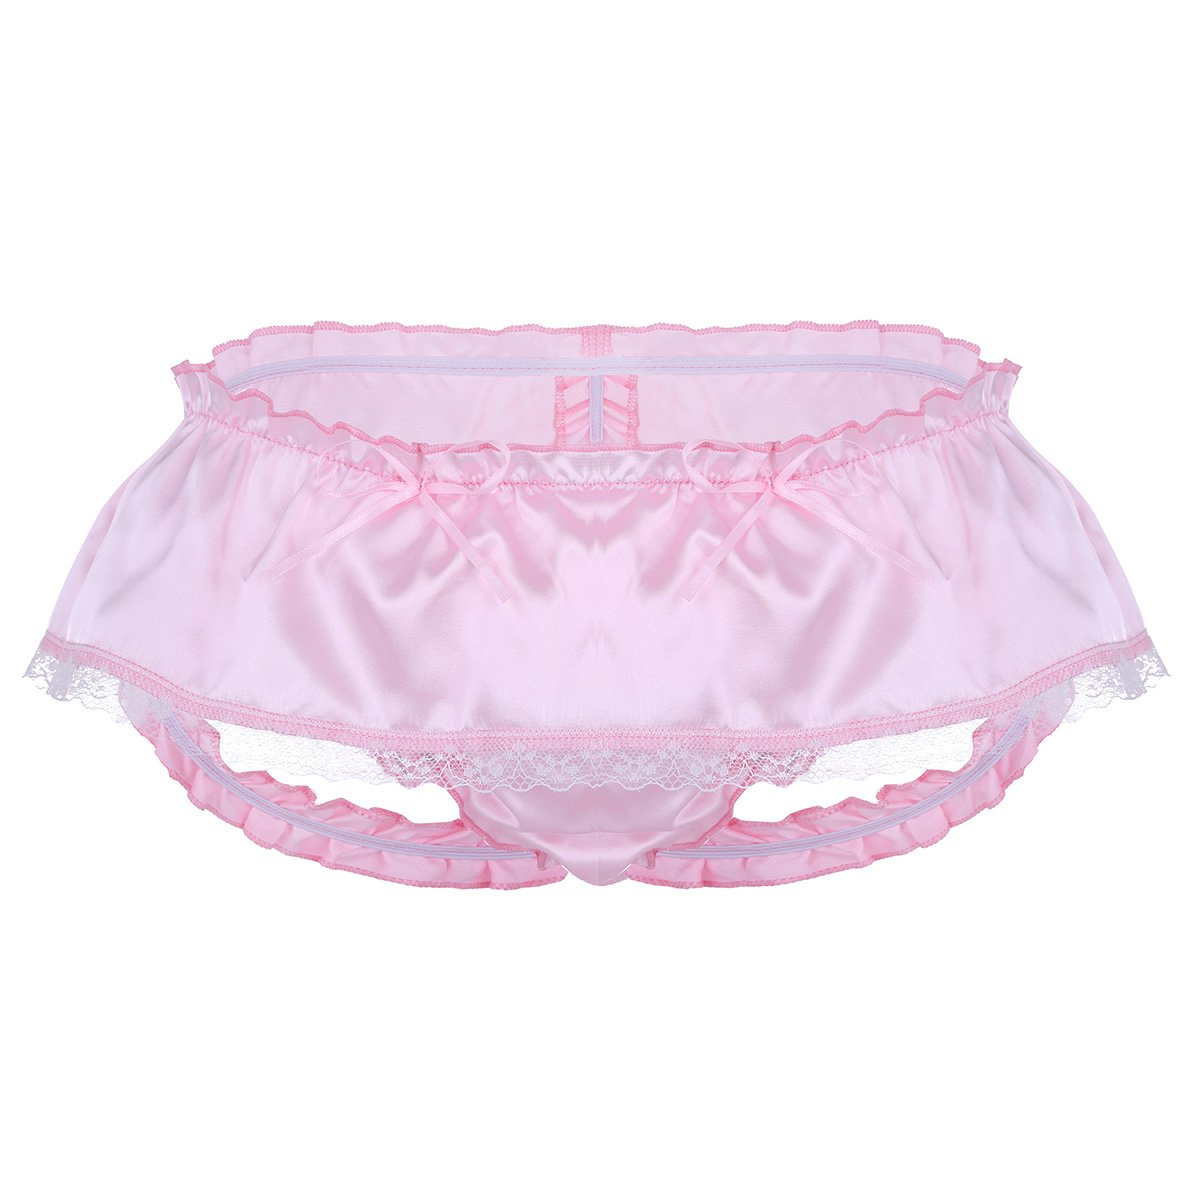 d9ab14afccb inlzdz Men's Sexy Ruffled Shiny Satin Lace Briefs Skirted Panties Sissy  Maid Lingerie Underwear